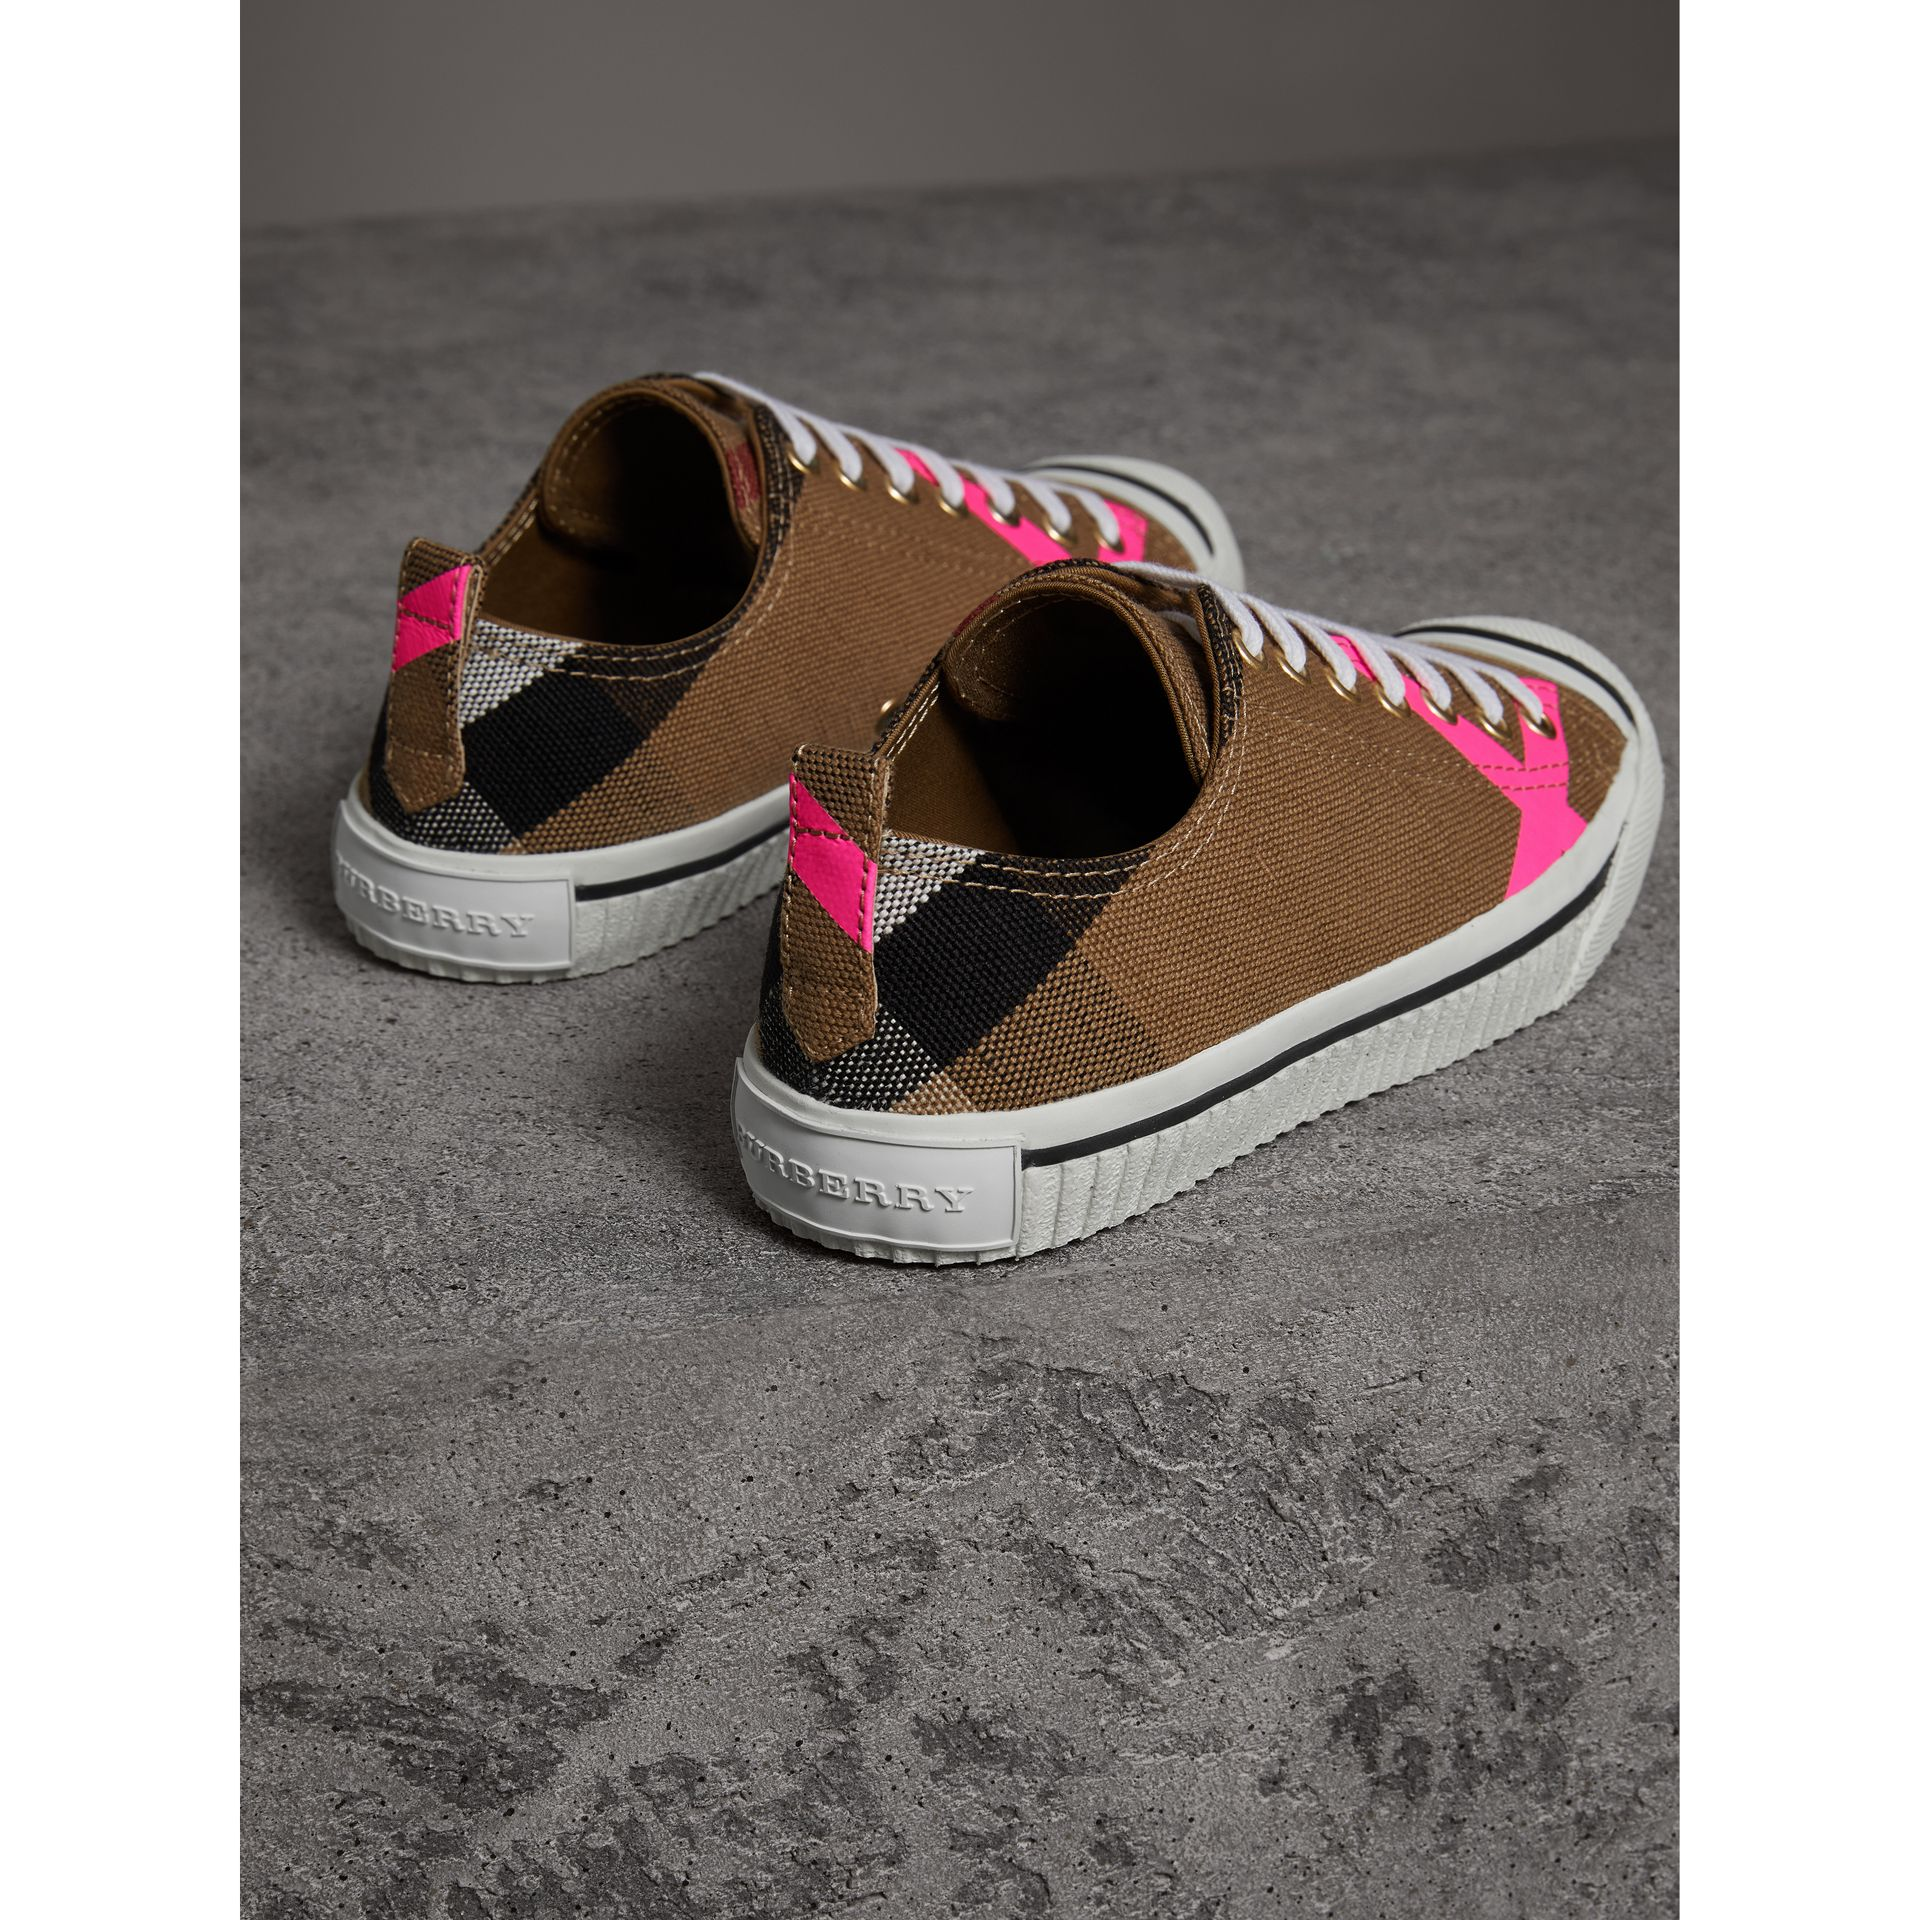 Canvas Check and Leather Sneakers in Classic/neon Pink - Women | Burberry United Kingdom - gallery image 3